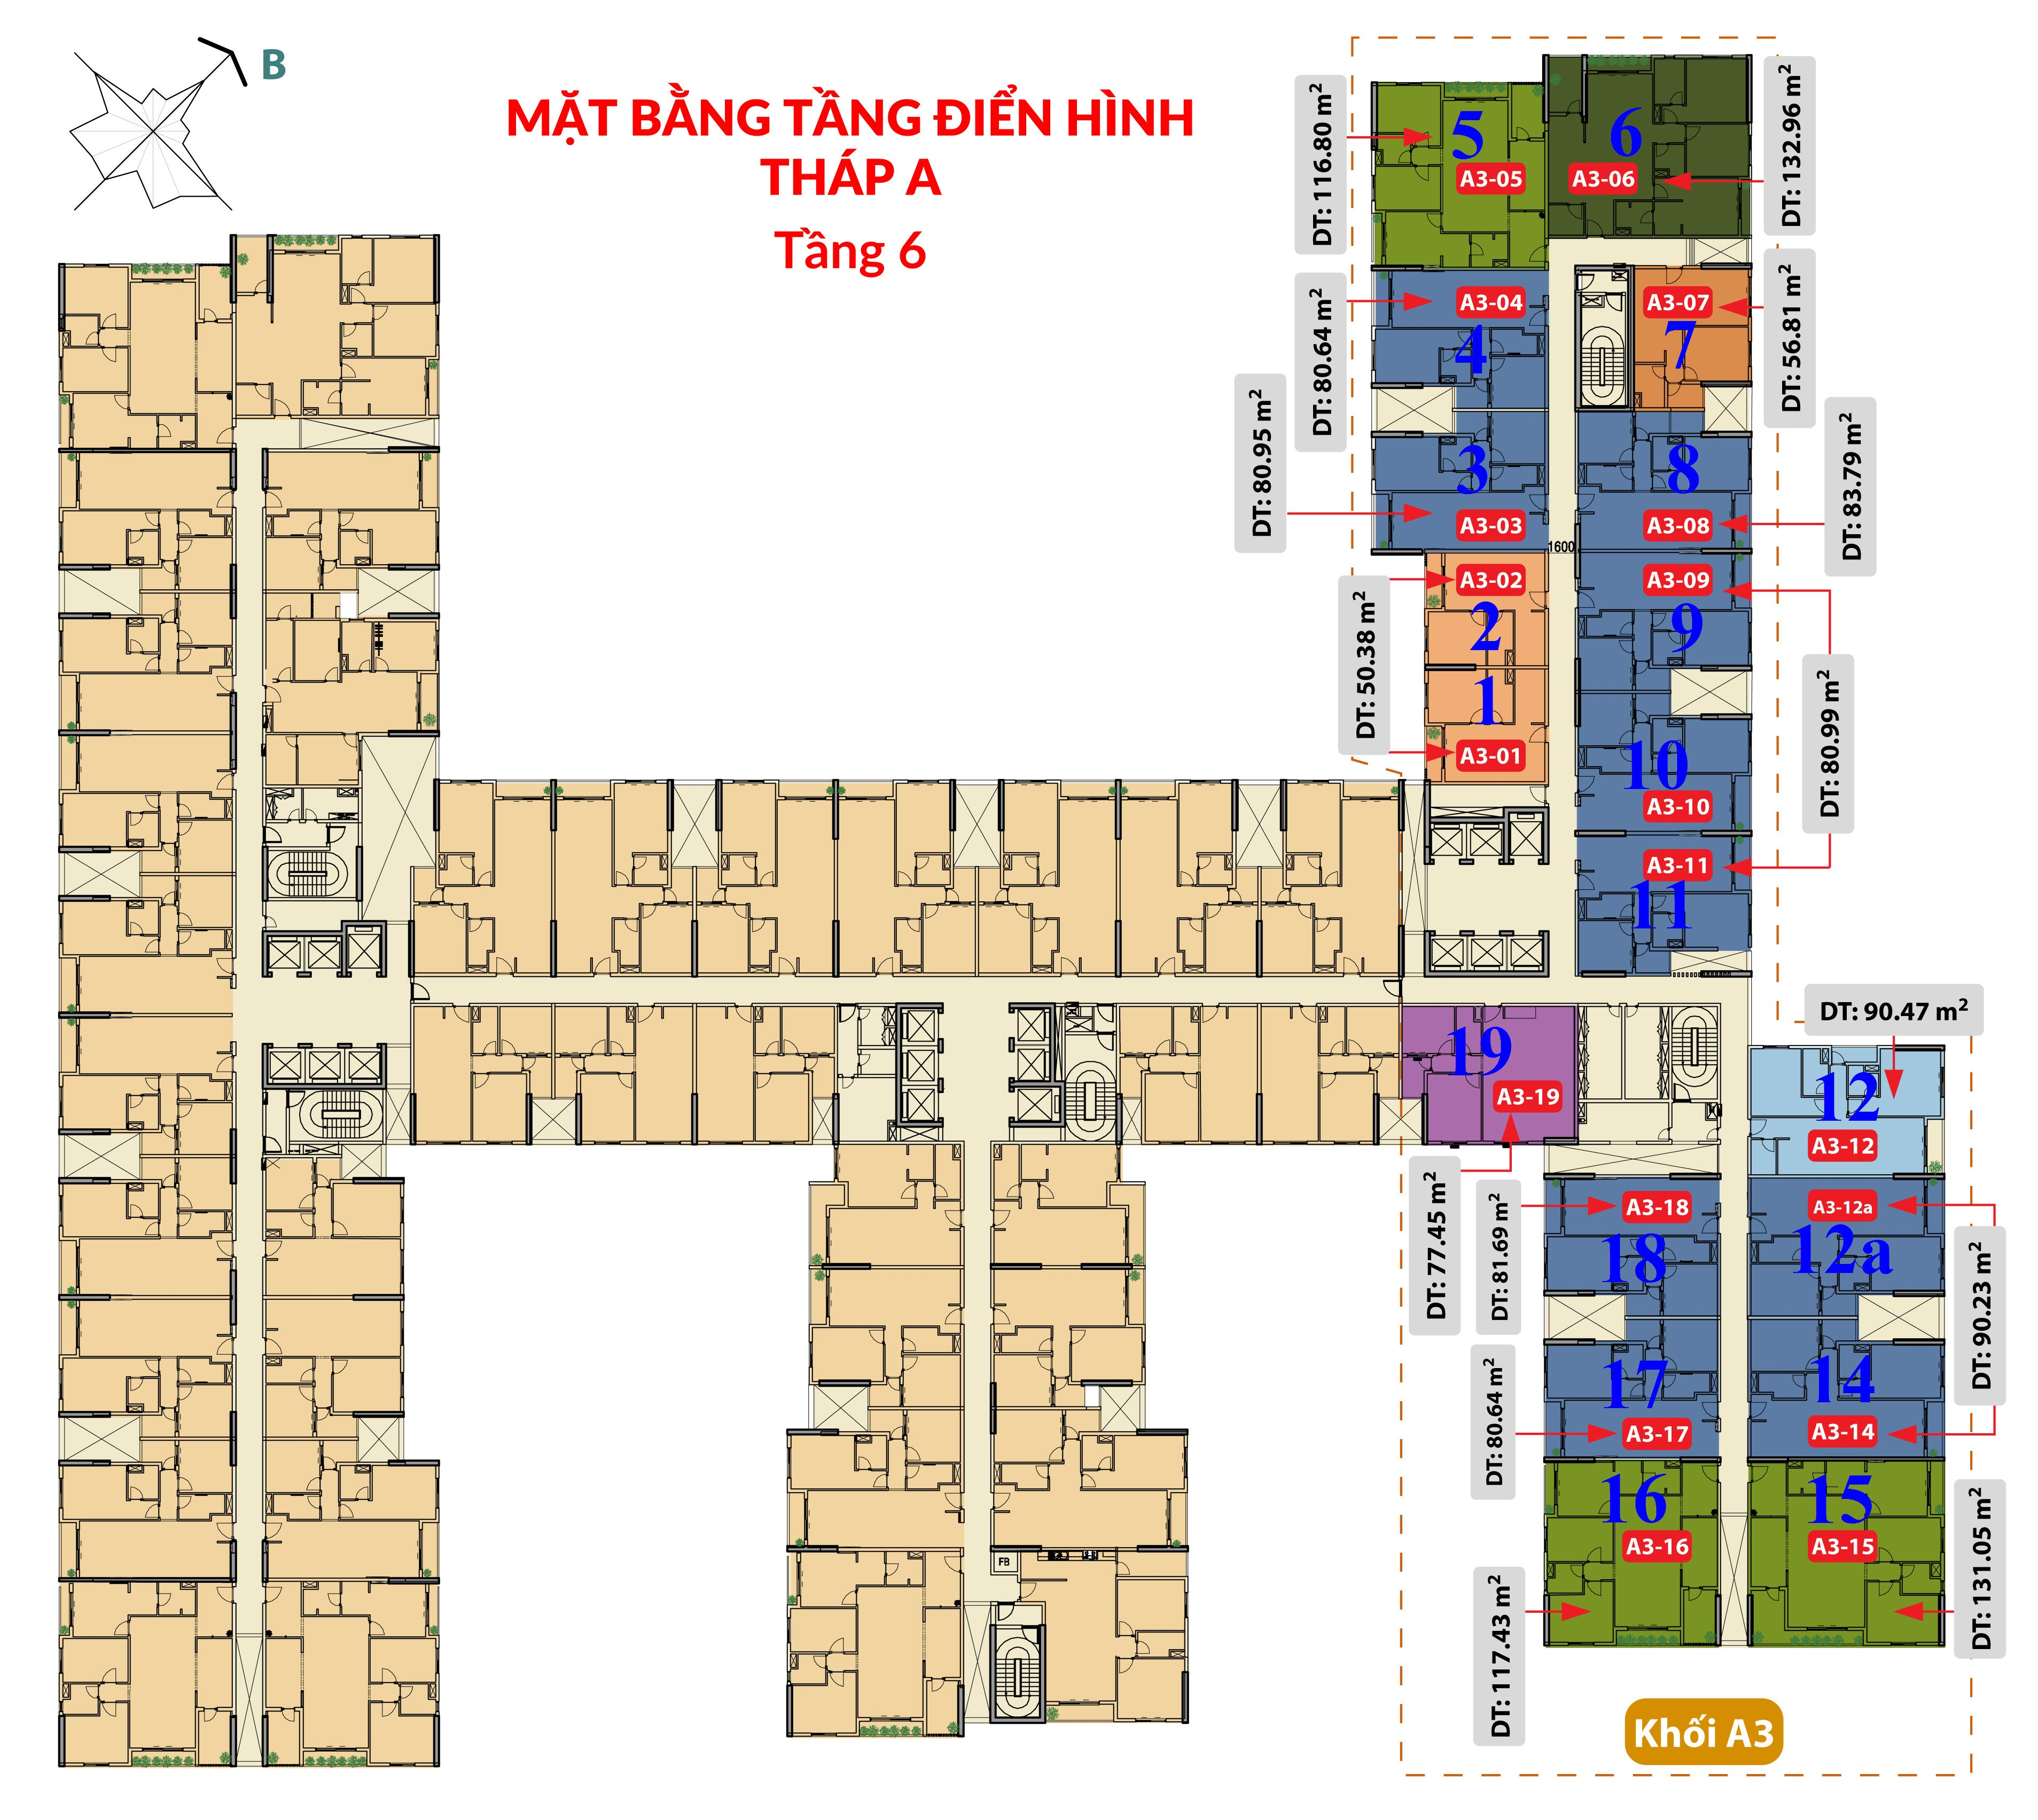 layout-mat-bang-tang-dien-hinh-tang-6-thap-A-the-gold-view